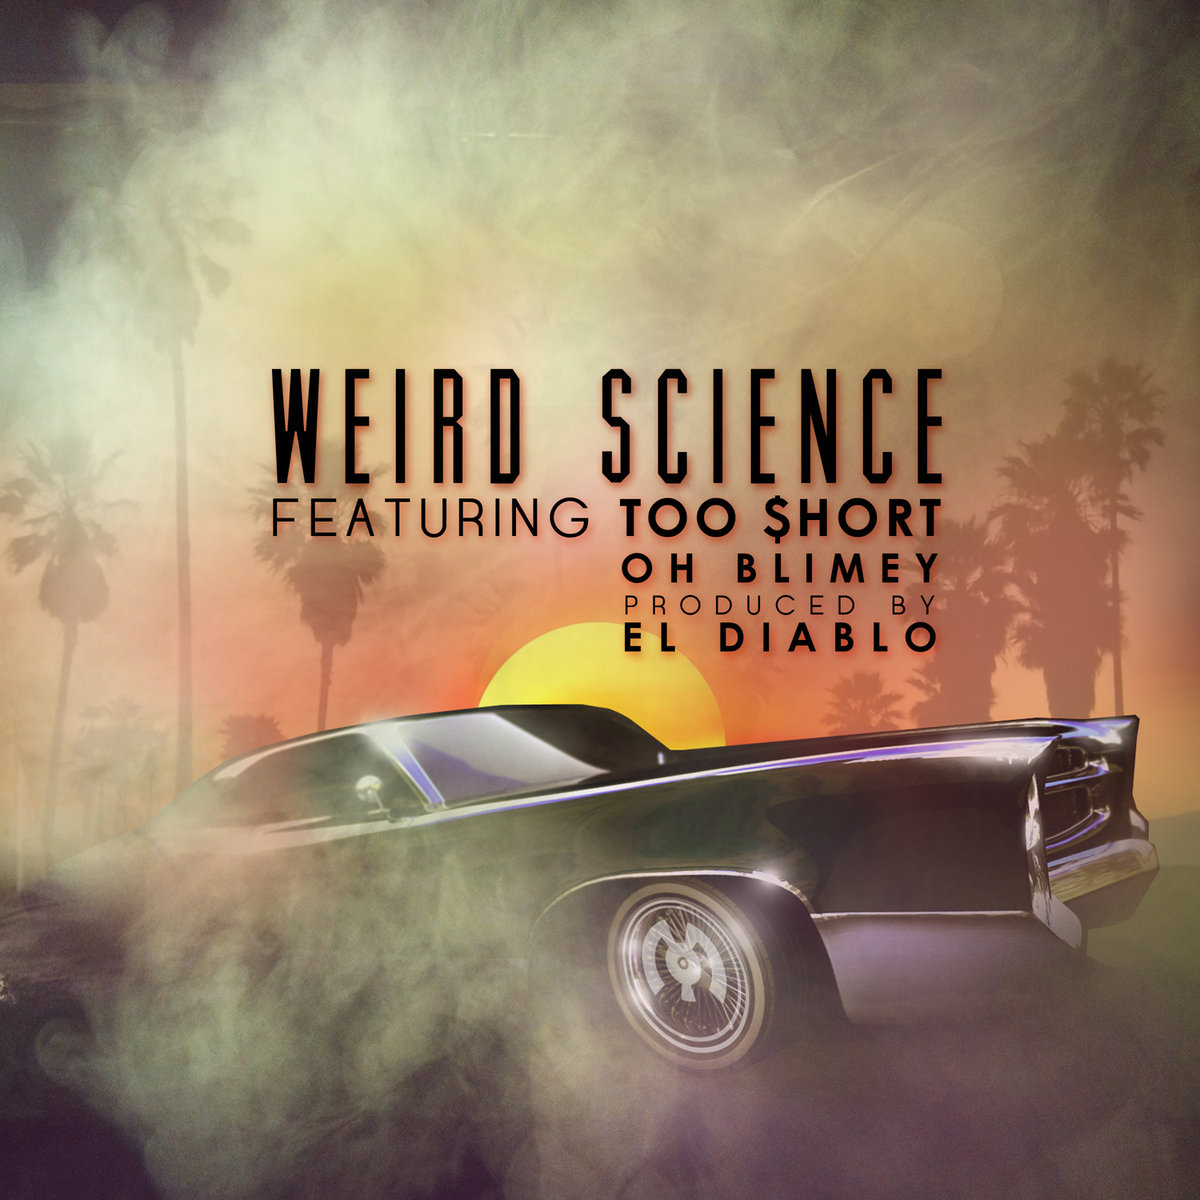 Too $hort, Oh Blimey, El Diablo - Weird Science (Timmy Tutone Remix) @ 'Weird Science' album (electronic, dubstep)